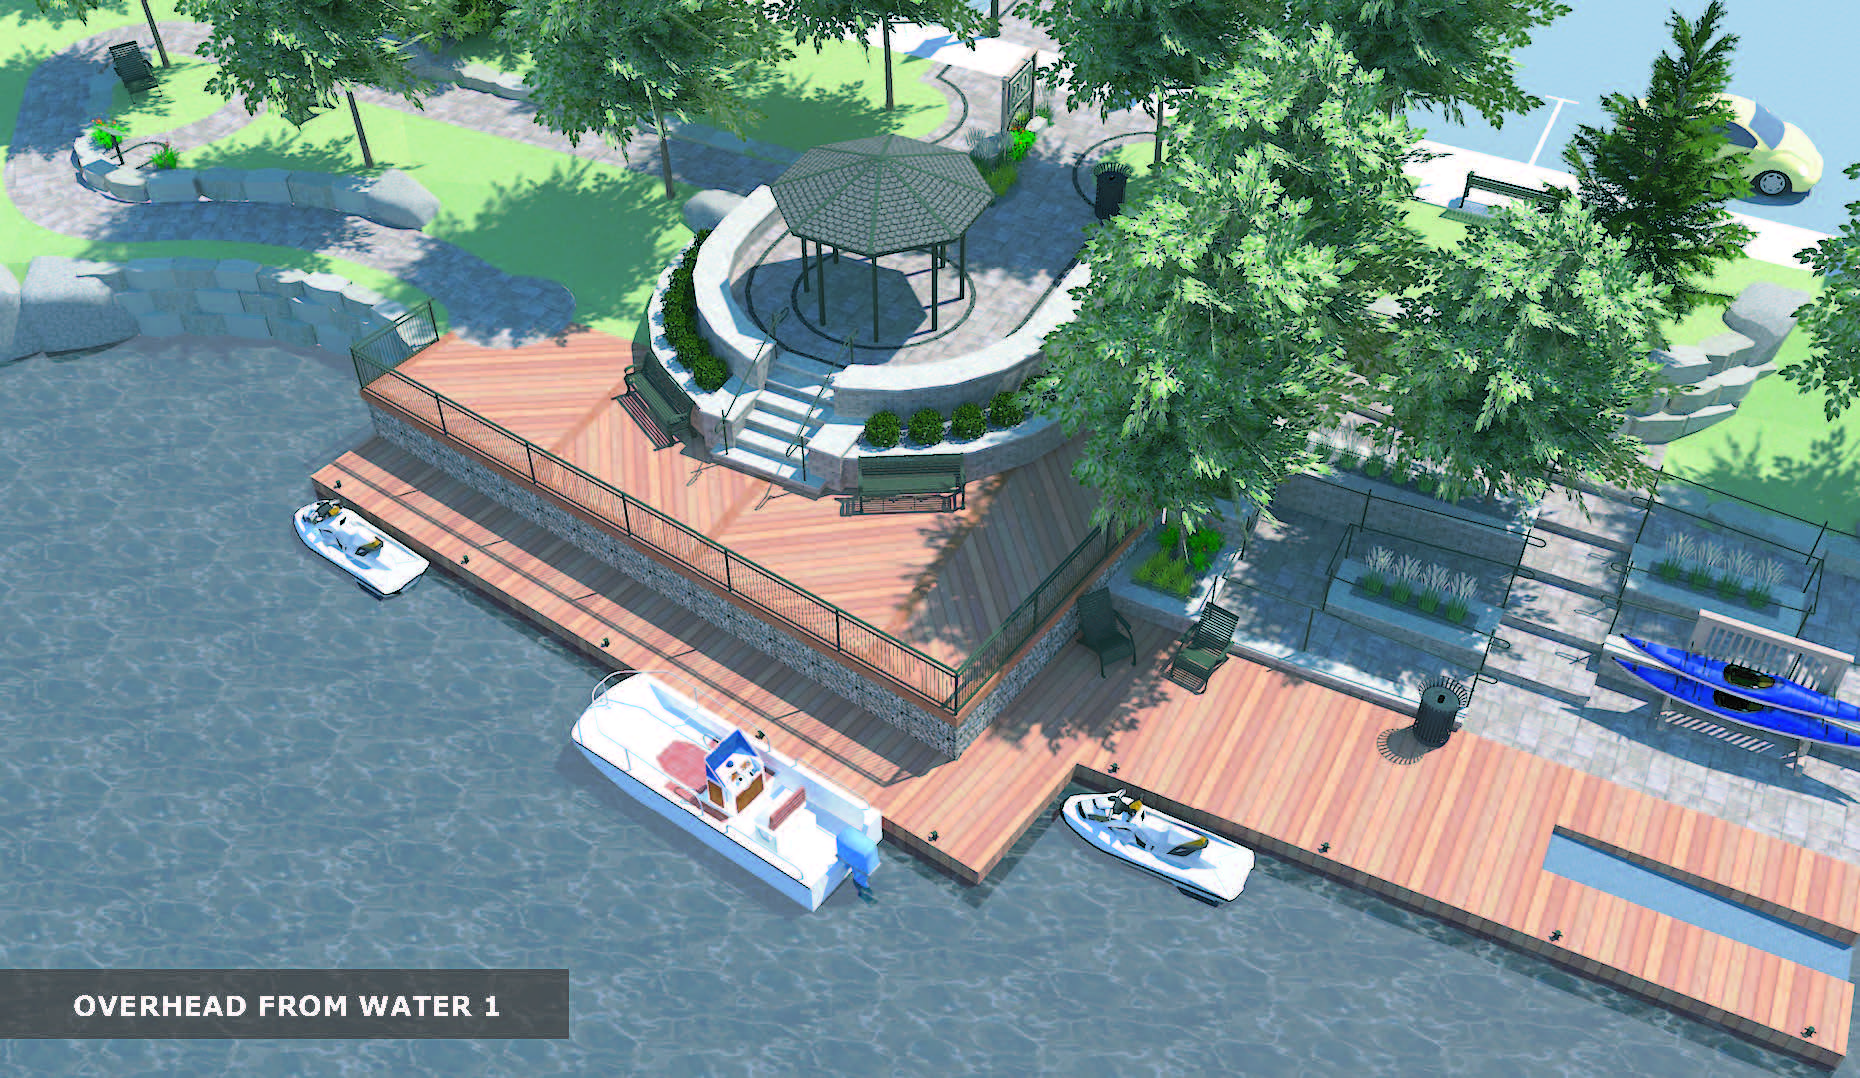 WATERFRONT PARK CONCEPT 1